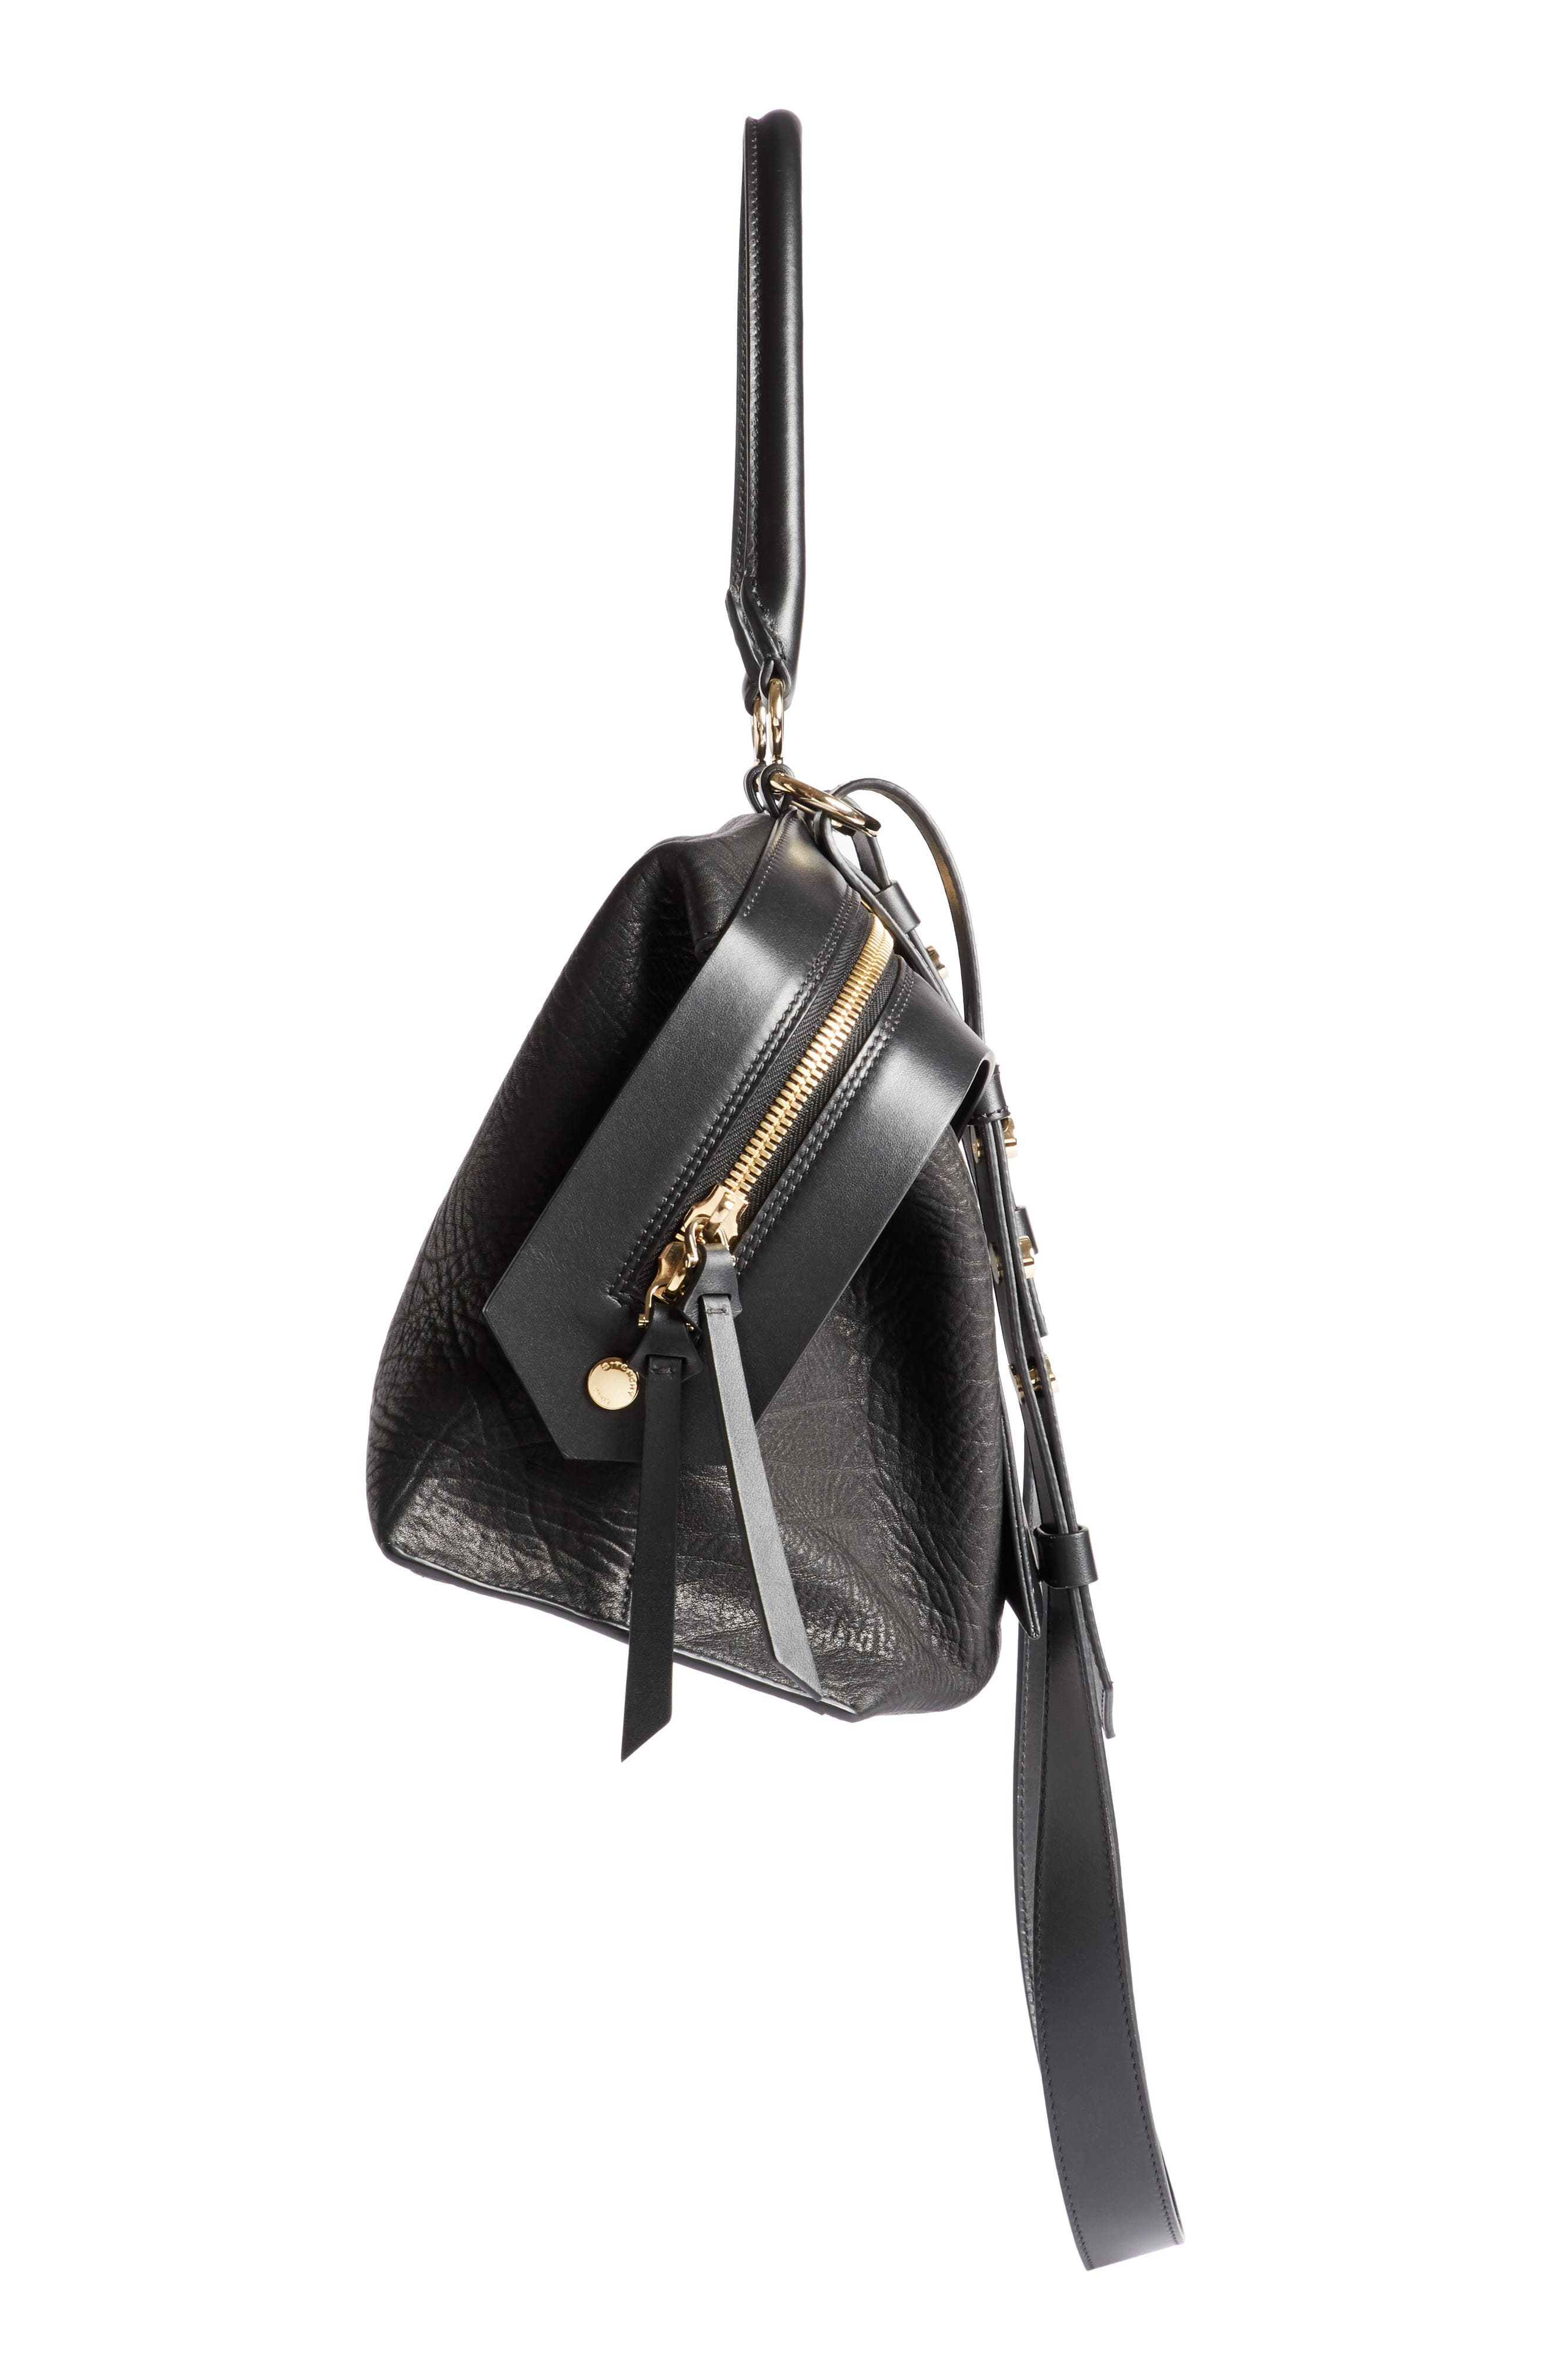 GIVENCHY,                             Medium Sway Leather Satchel,                             Alternate thumbnail 4, color,                             001